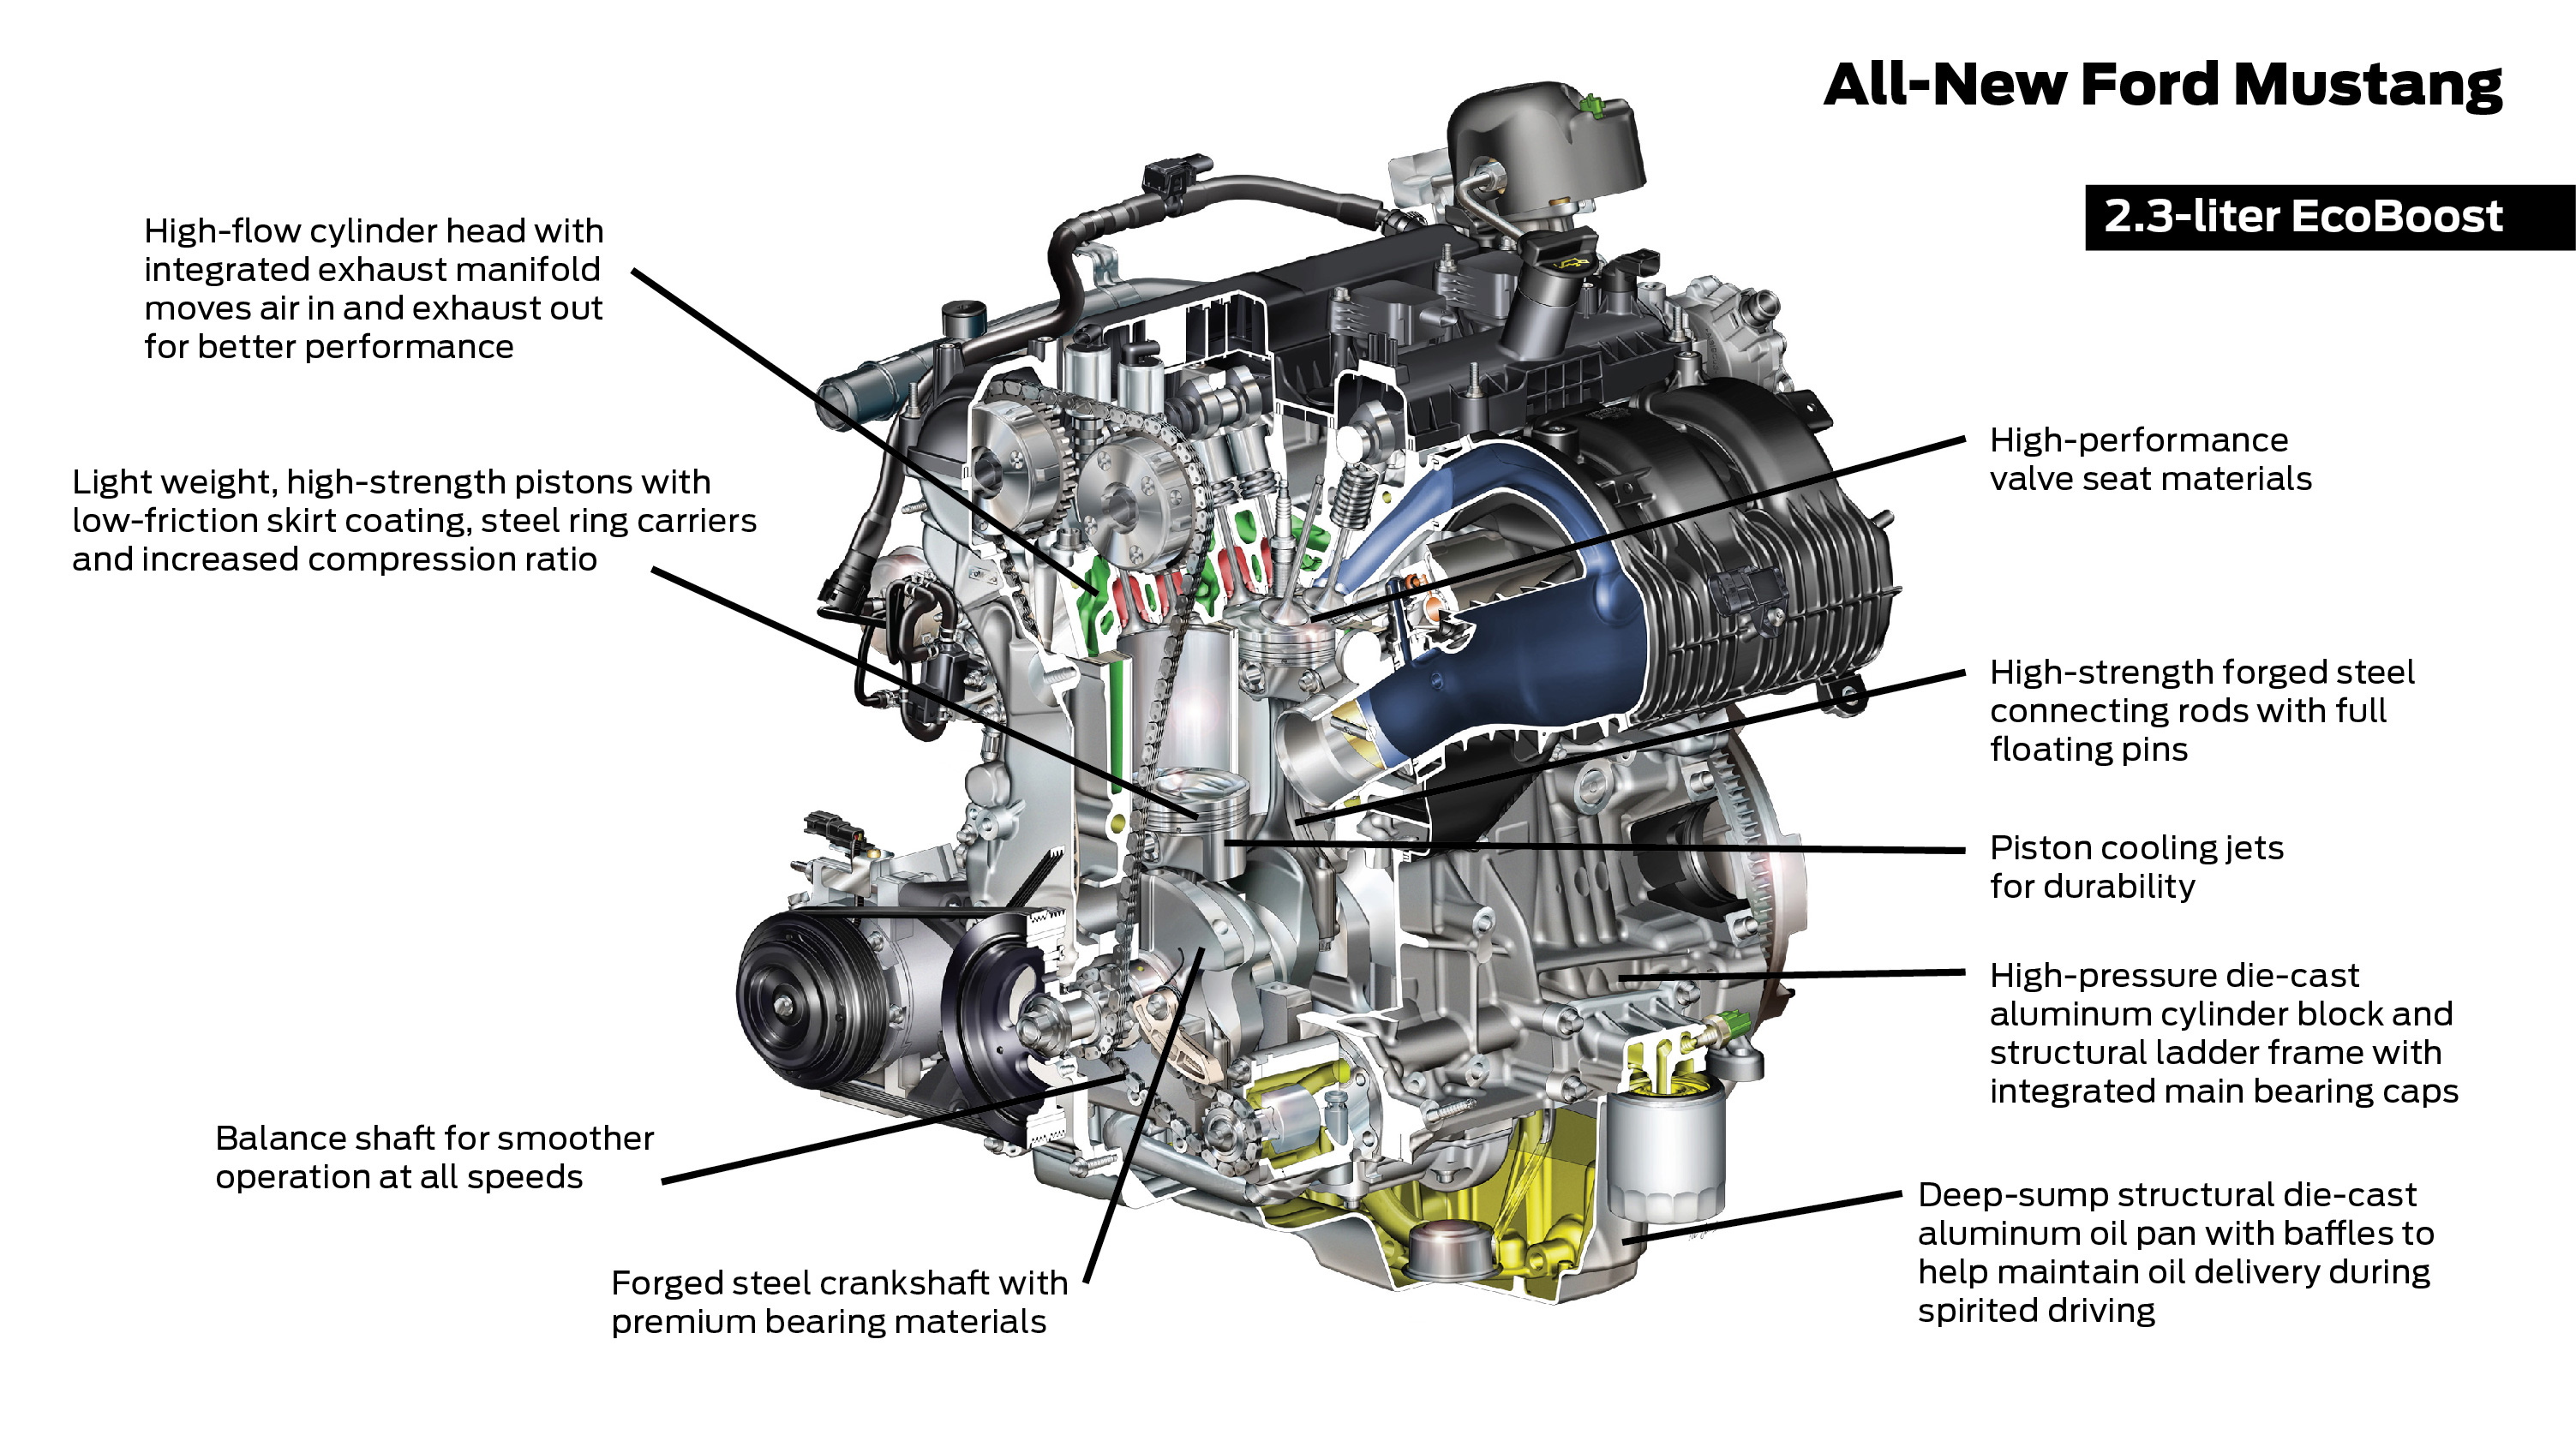 2015 Ford Mustang 10 Things You Need To Know Top Speed V6 Engine Cylinder Head Diagram